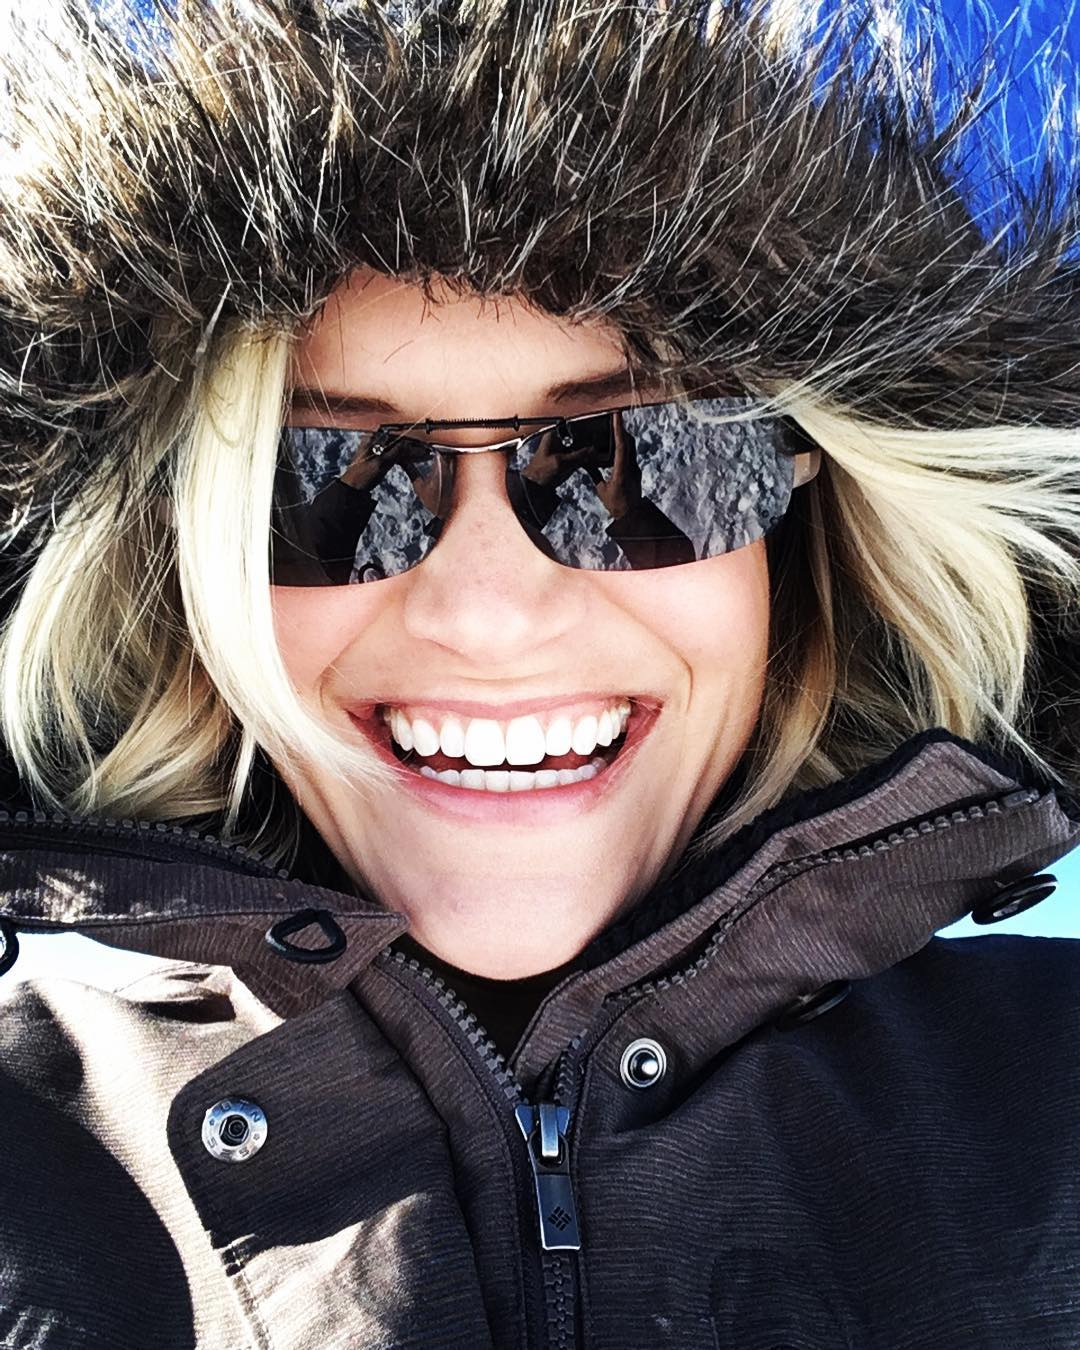 young woman smiling at you all bundled up wearing a warm winter coat